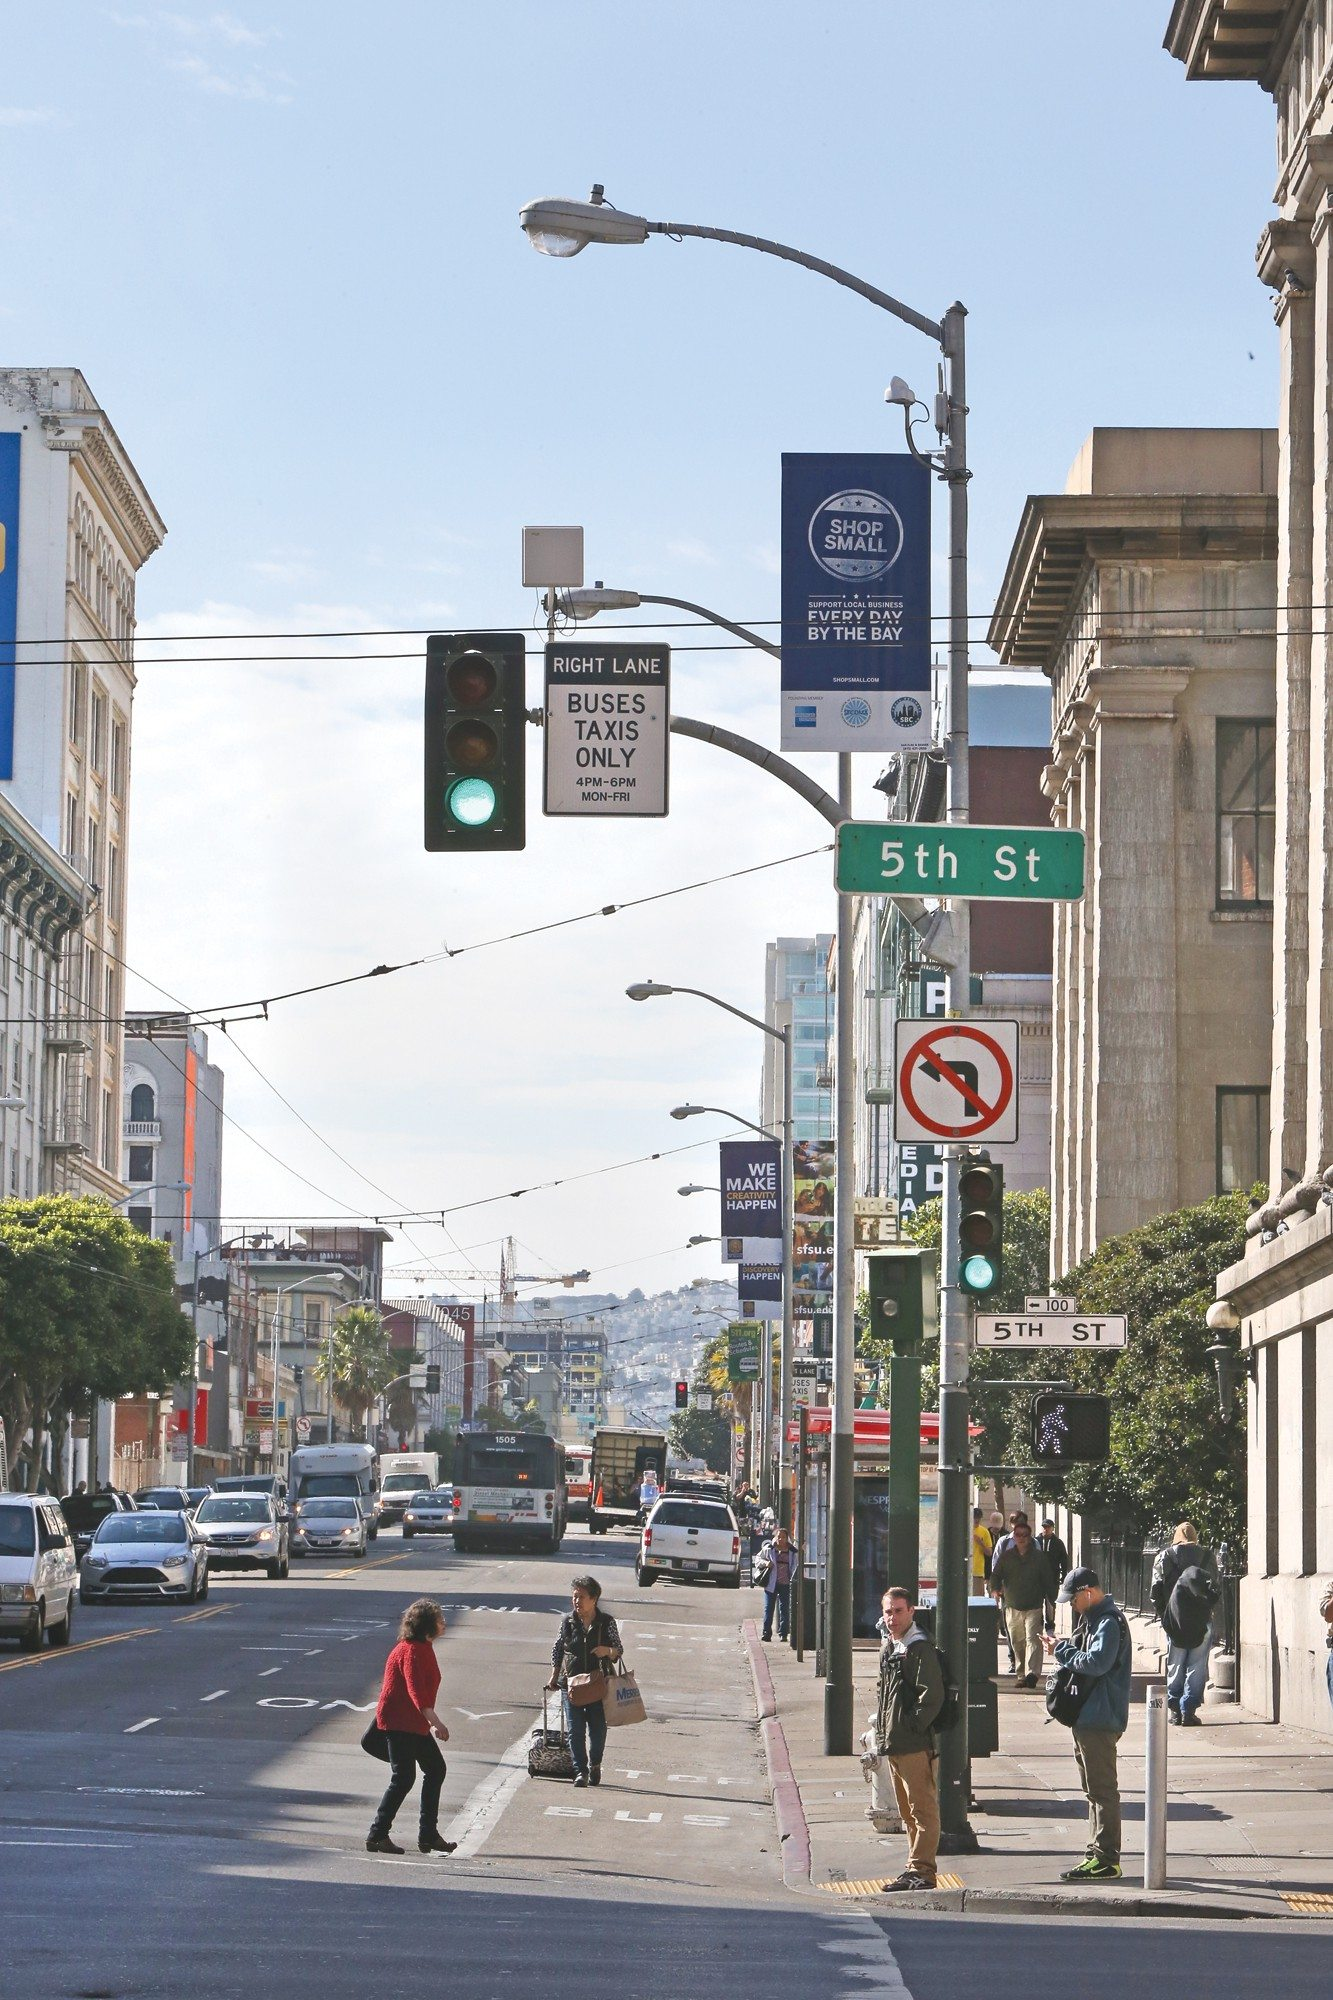 Mike Koozmin/The S.f. ExaminerTelecommunication companies want to install wireless antennas on some of The City's 16